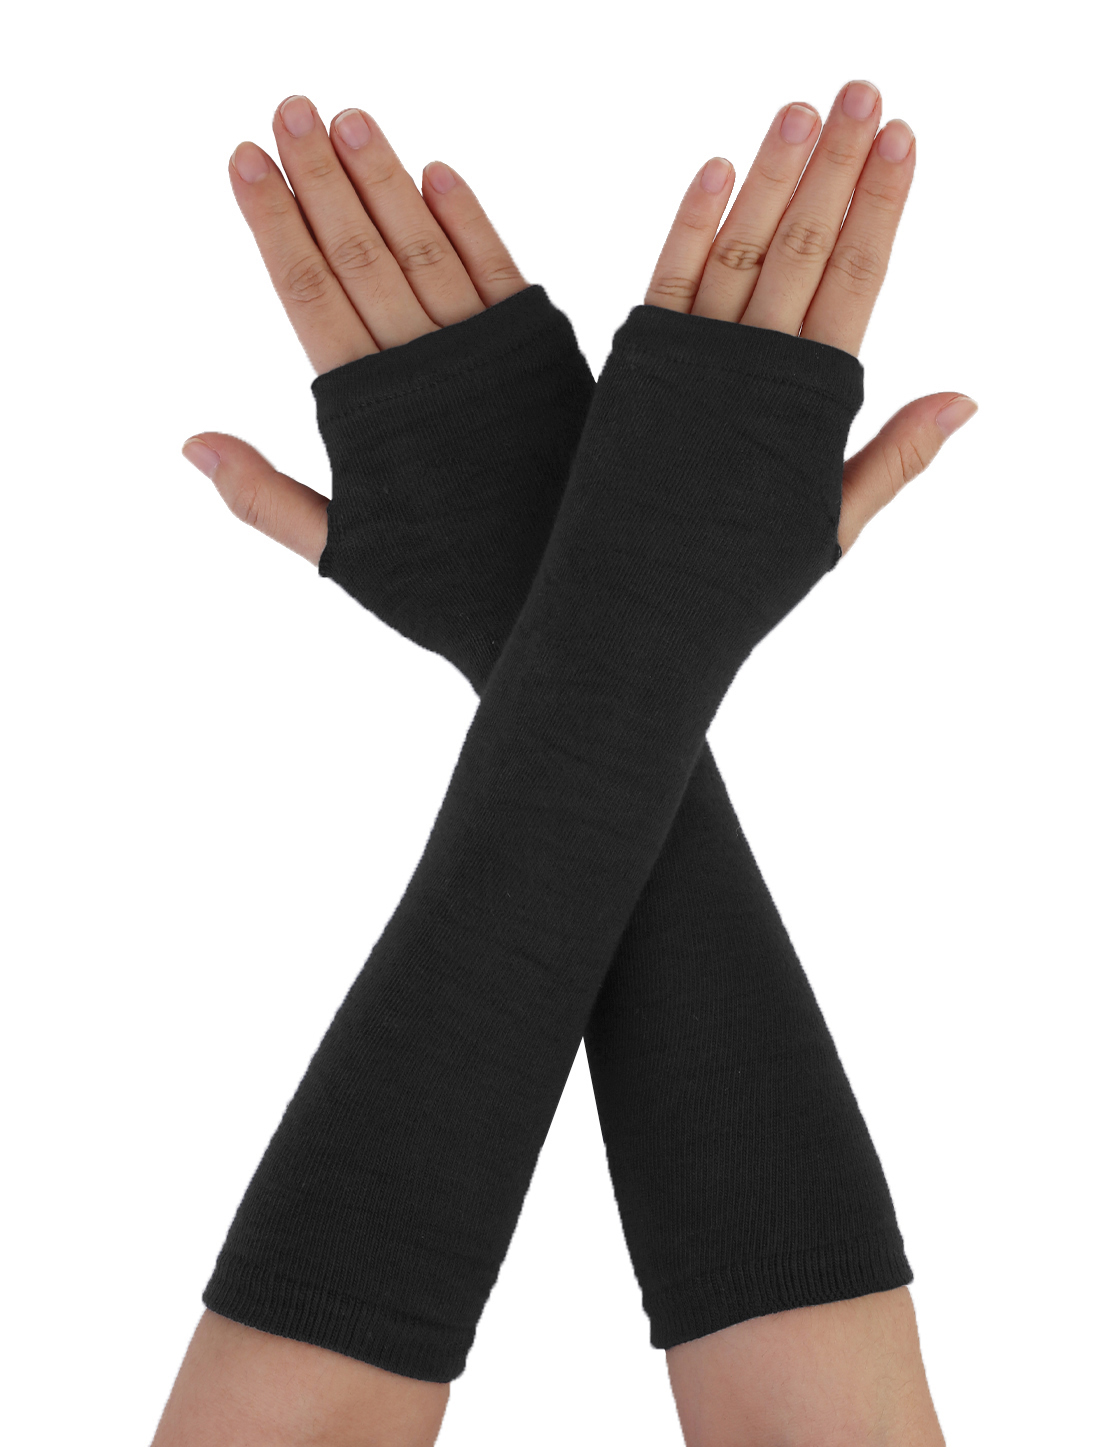 Plain Black Ladies Long Arm Fingerless Gloves Warmer